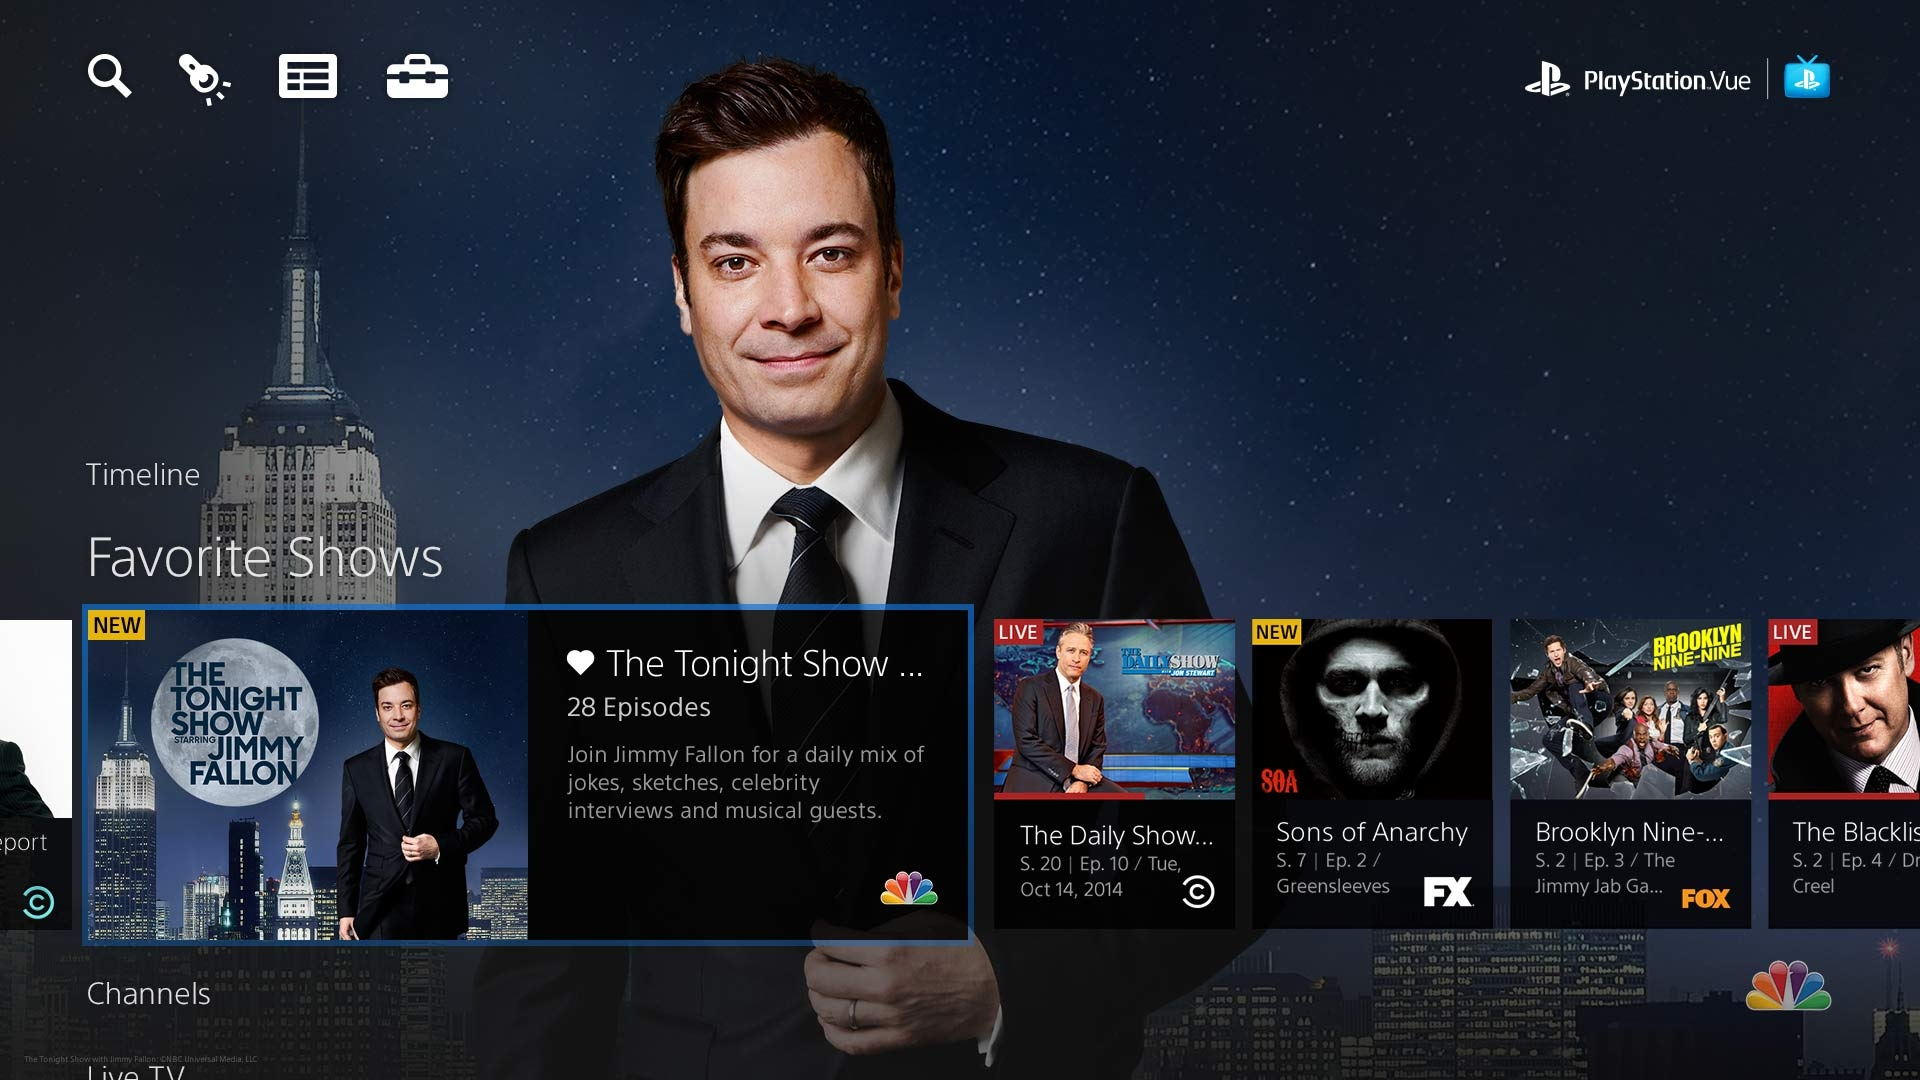 Playstation Vue Screenshot